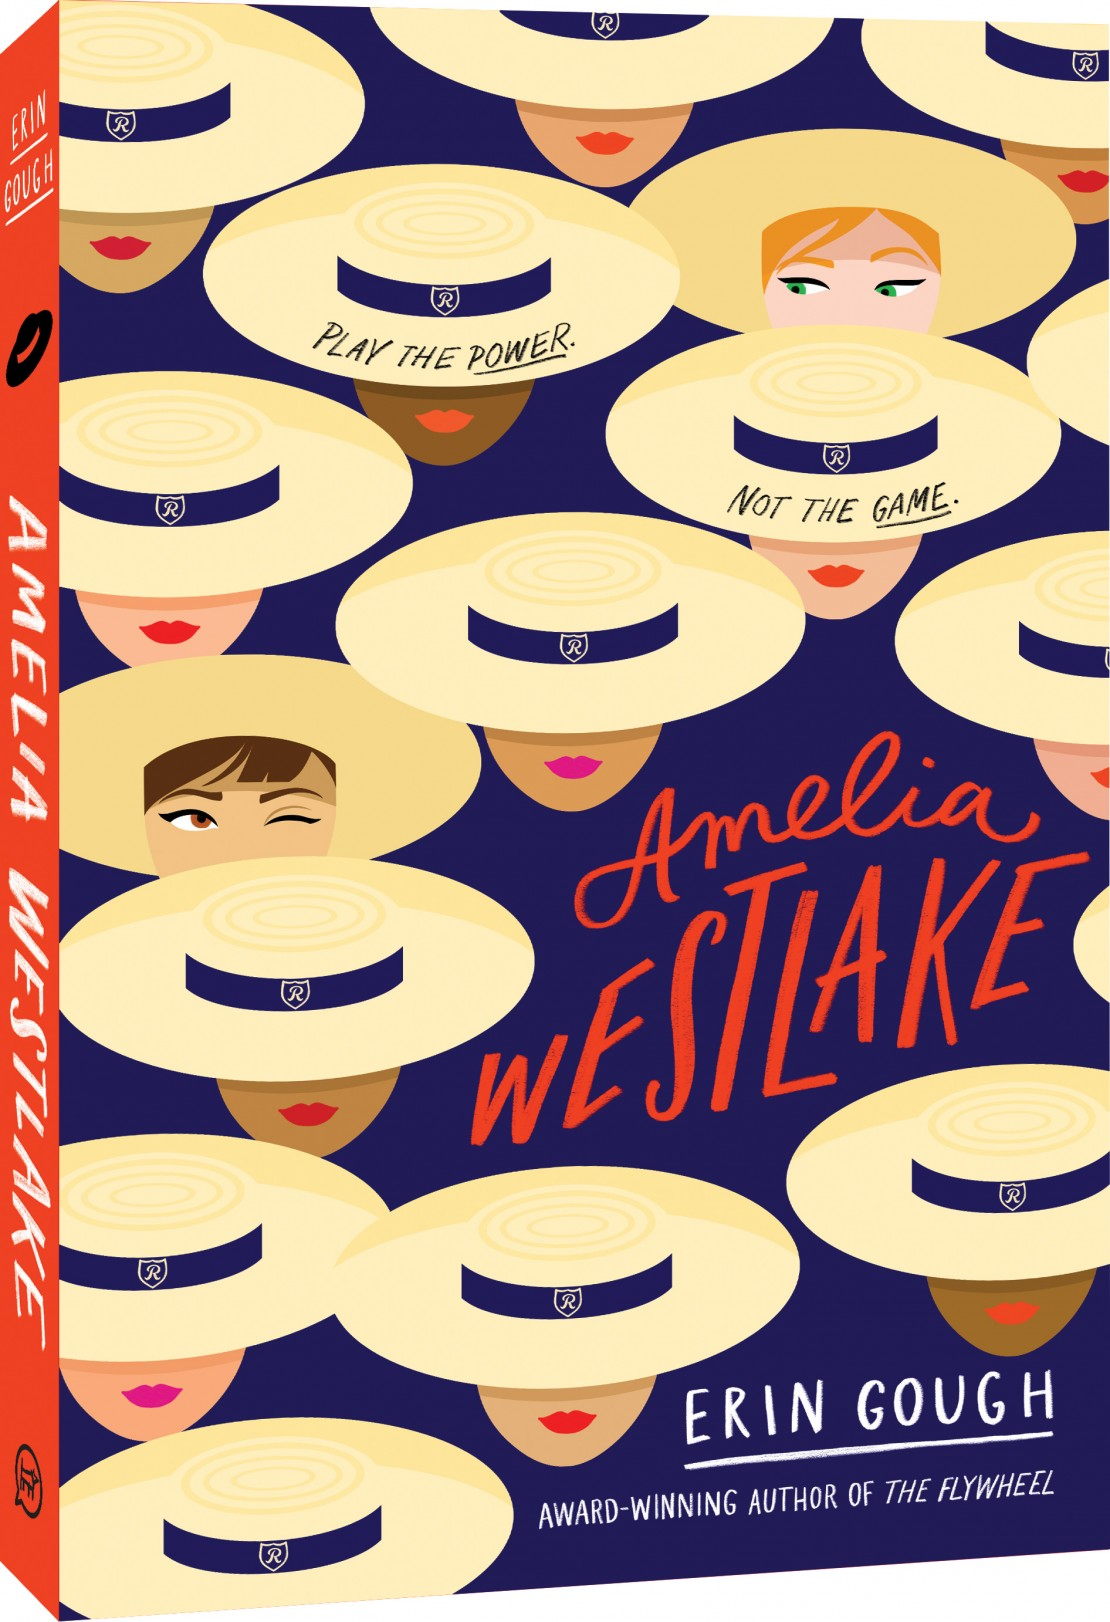 Amelia Westlake by Erin Gough